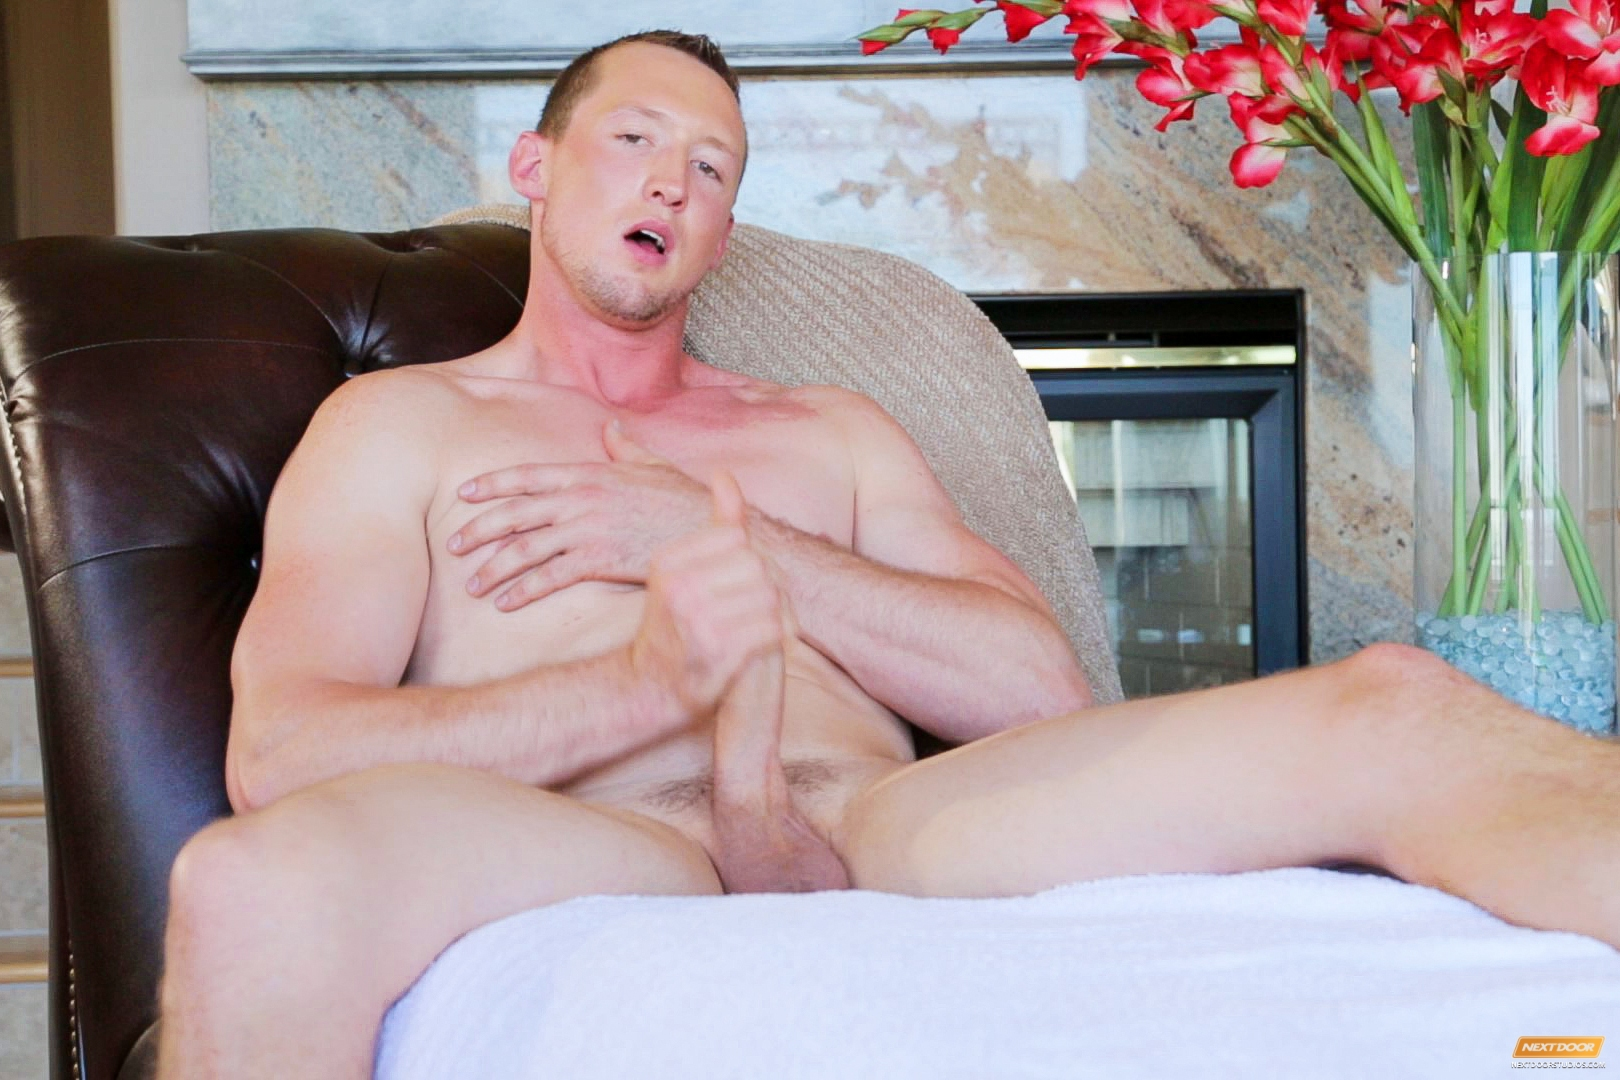 Leo Winston is a sharp-jawed, soft-spoken objectively guy, with a bit of shy hindrance that takes minor extent initial uncovering. Once he opens up, this Montana bred hunk reveals a thoughtful perspective and a nice, big cock to back it up. An eager outdo